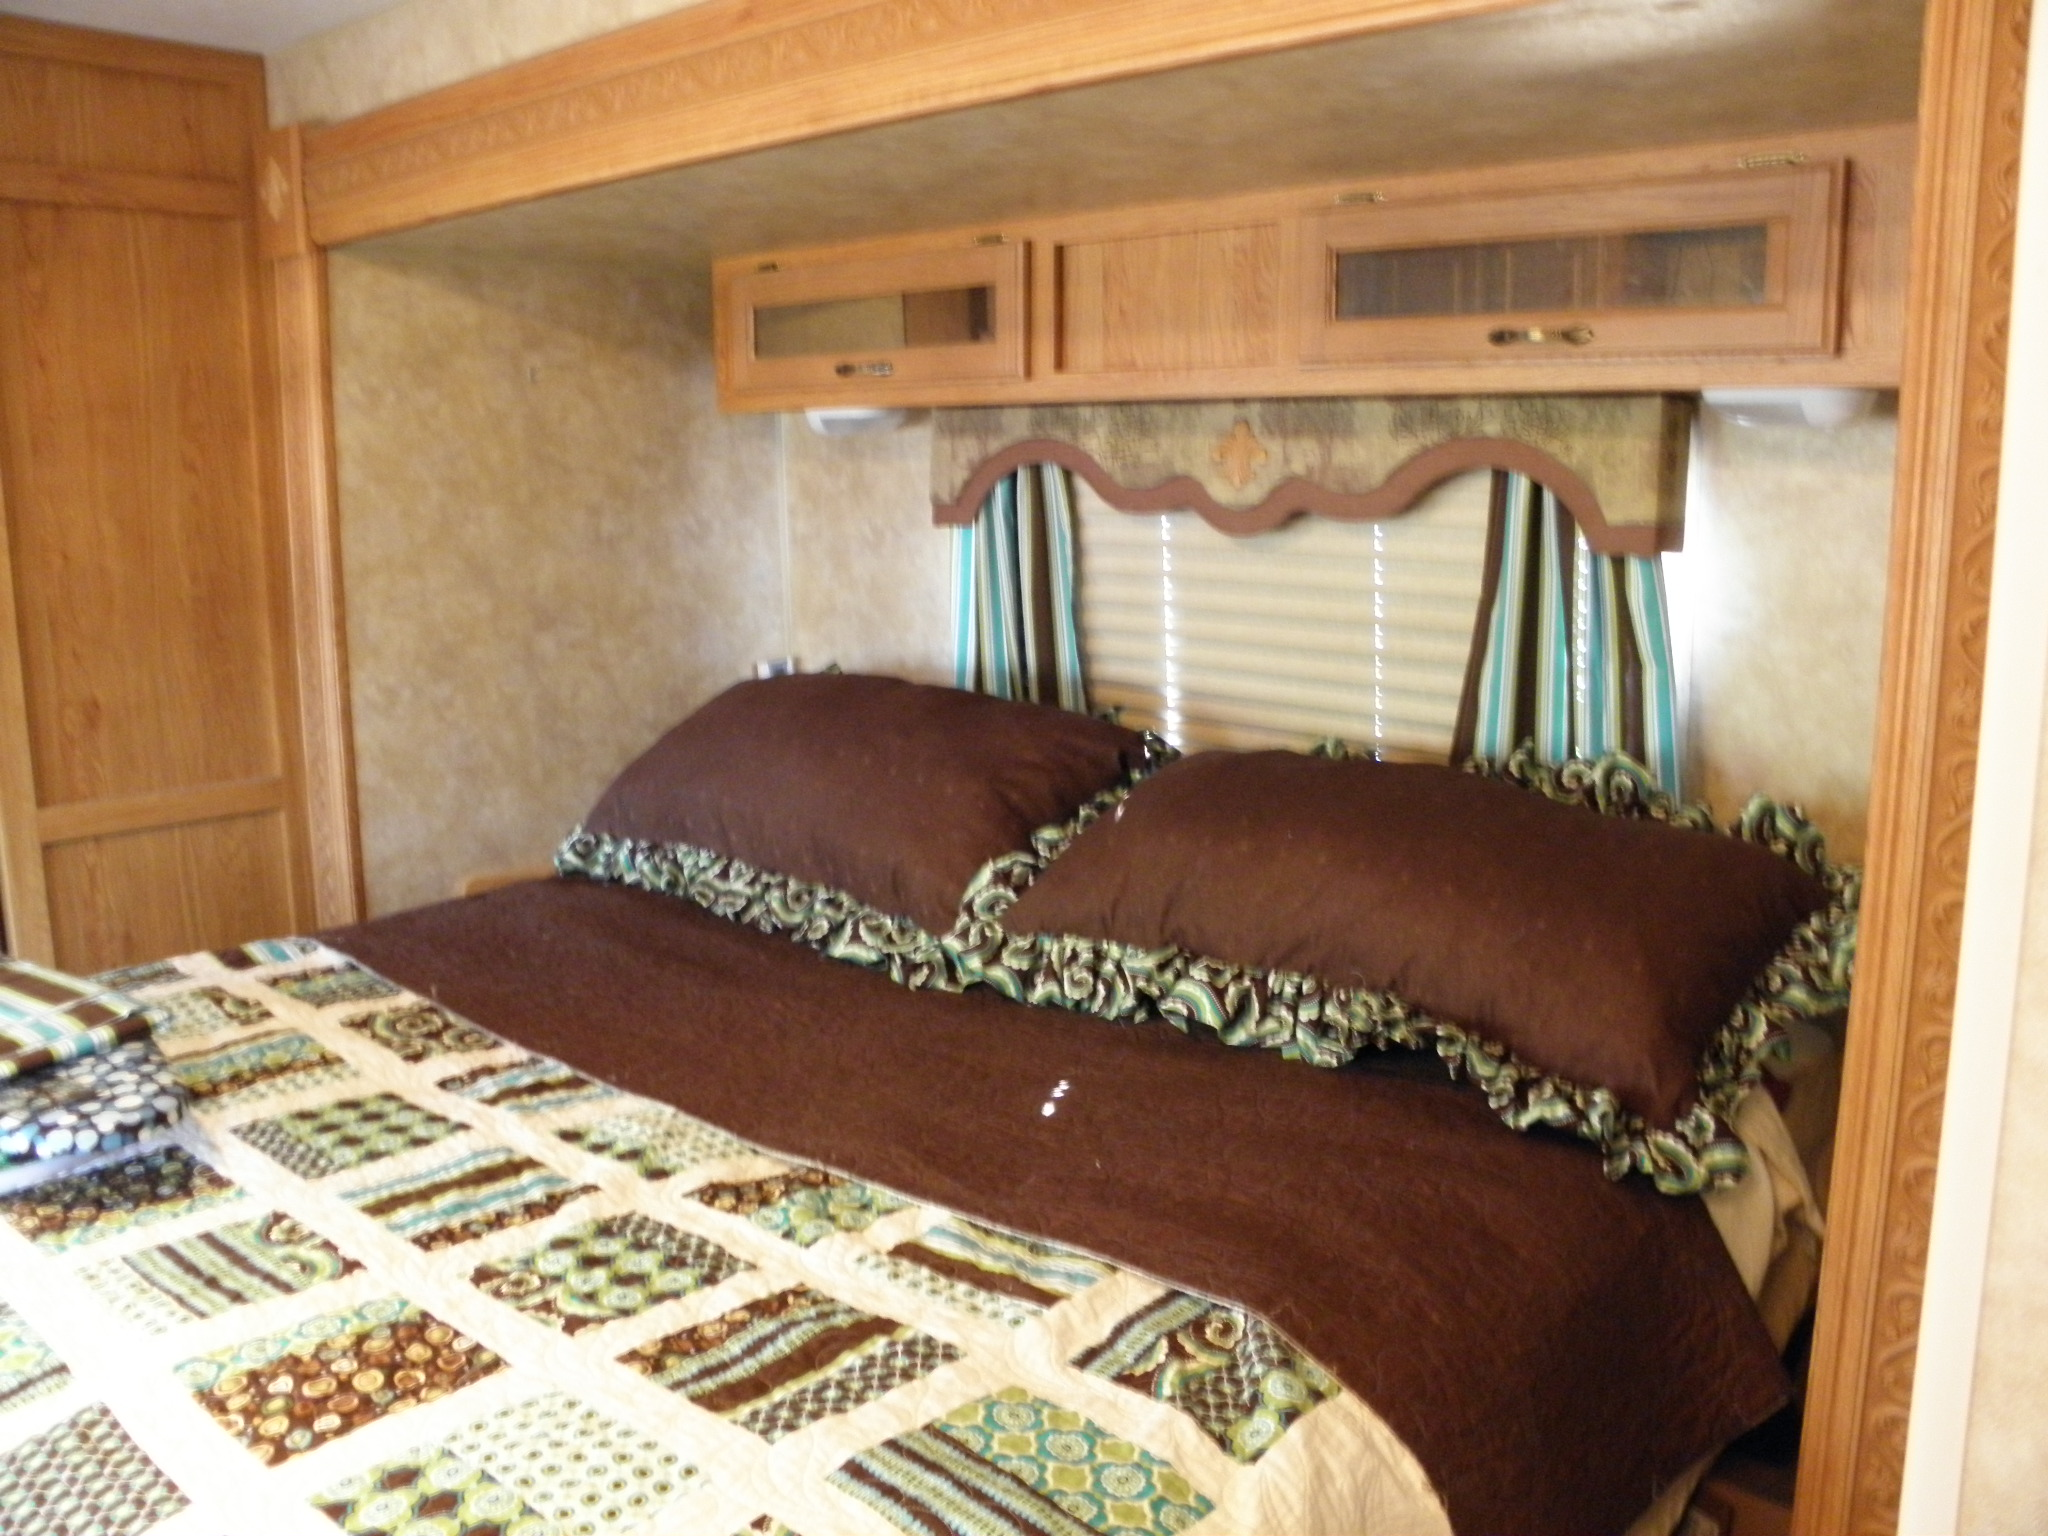 Redecorating the rv bedroom fabgrandma for Redecorating bedroom